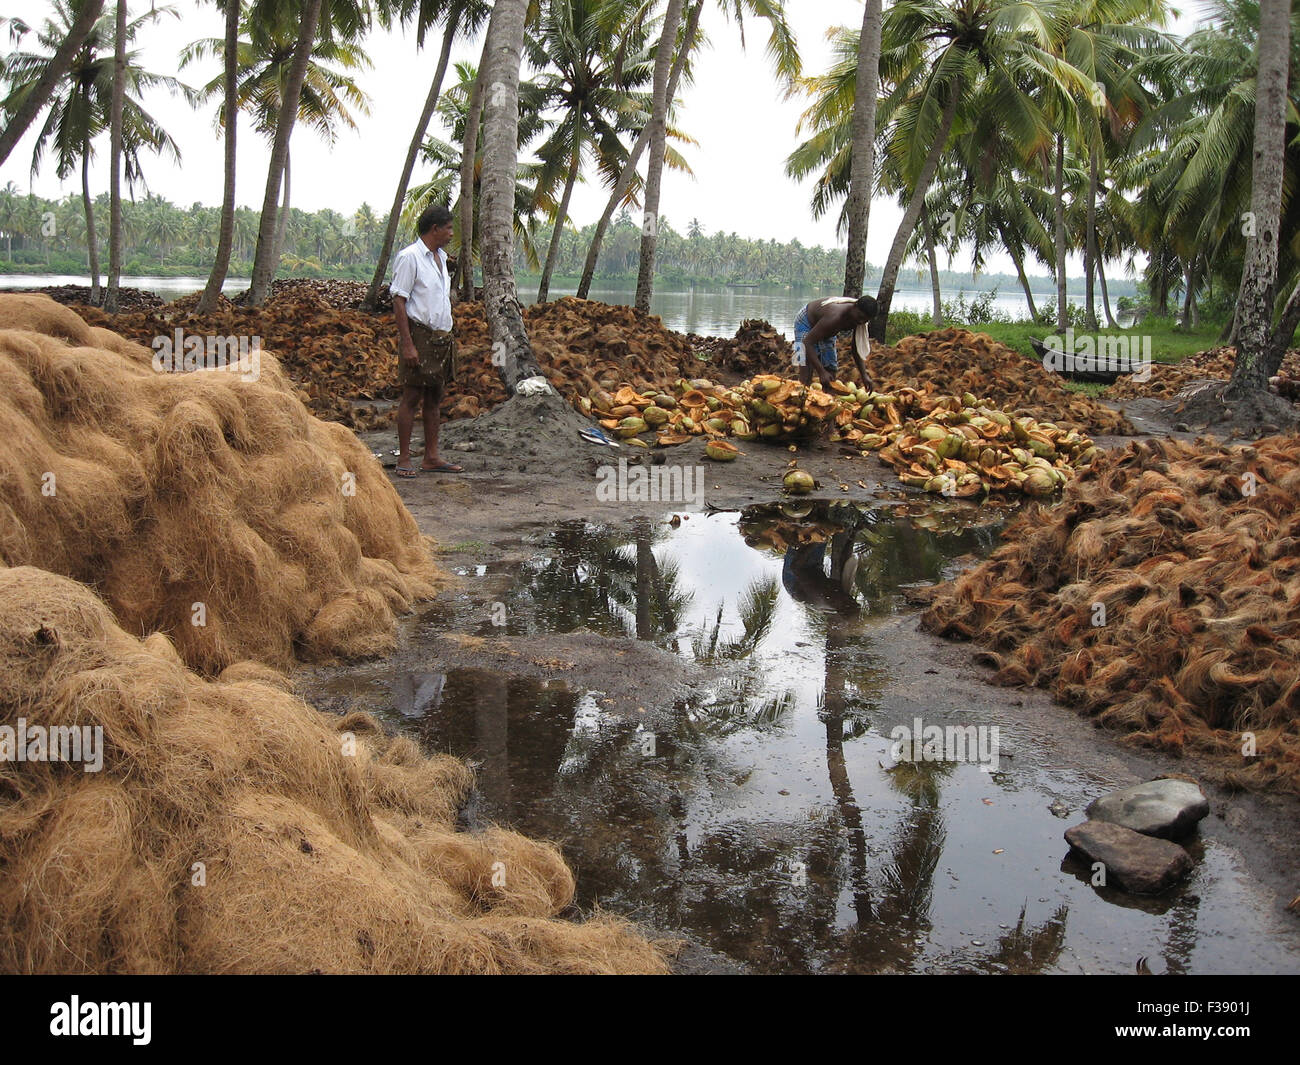 Coconut palm bioindustry, Bio green industry, coconut green husk removed from coconut fruit(near the worker). down Stock Photo